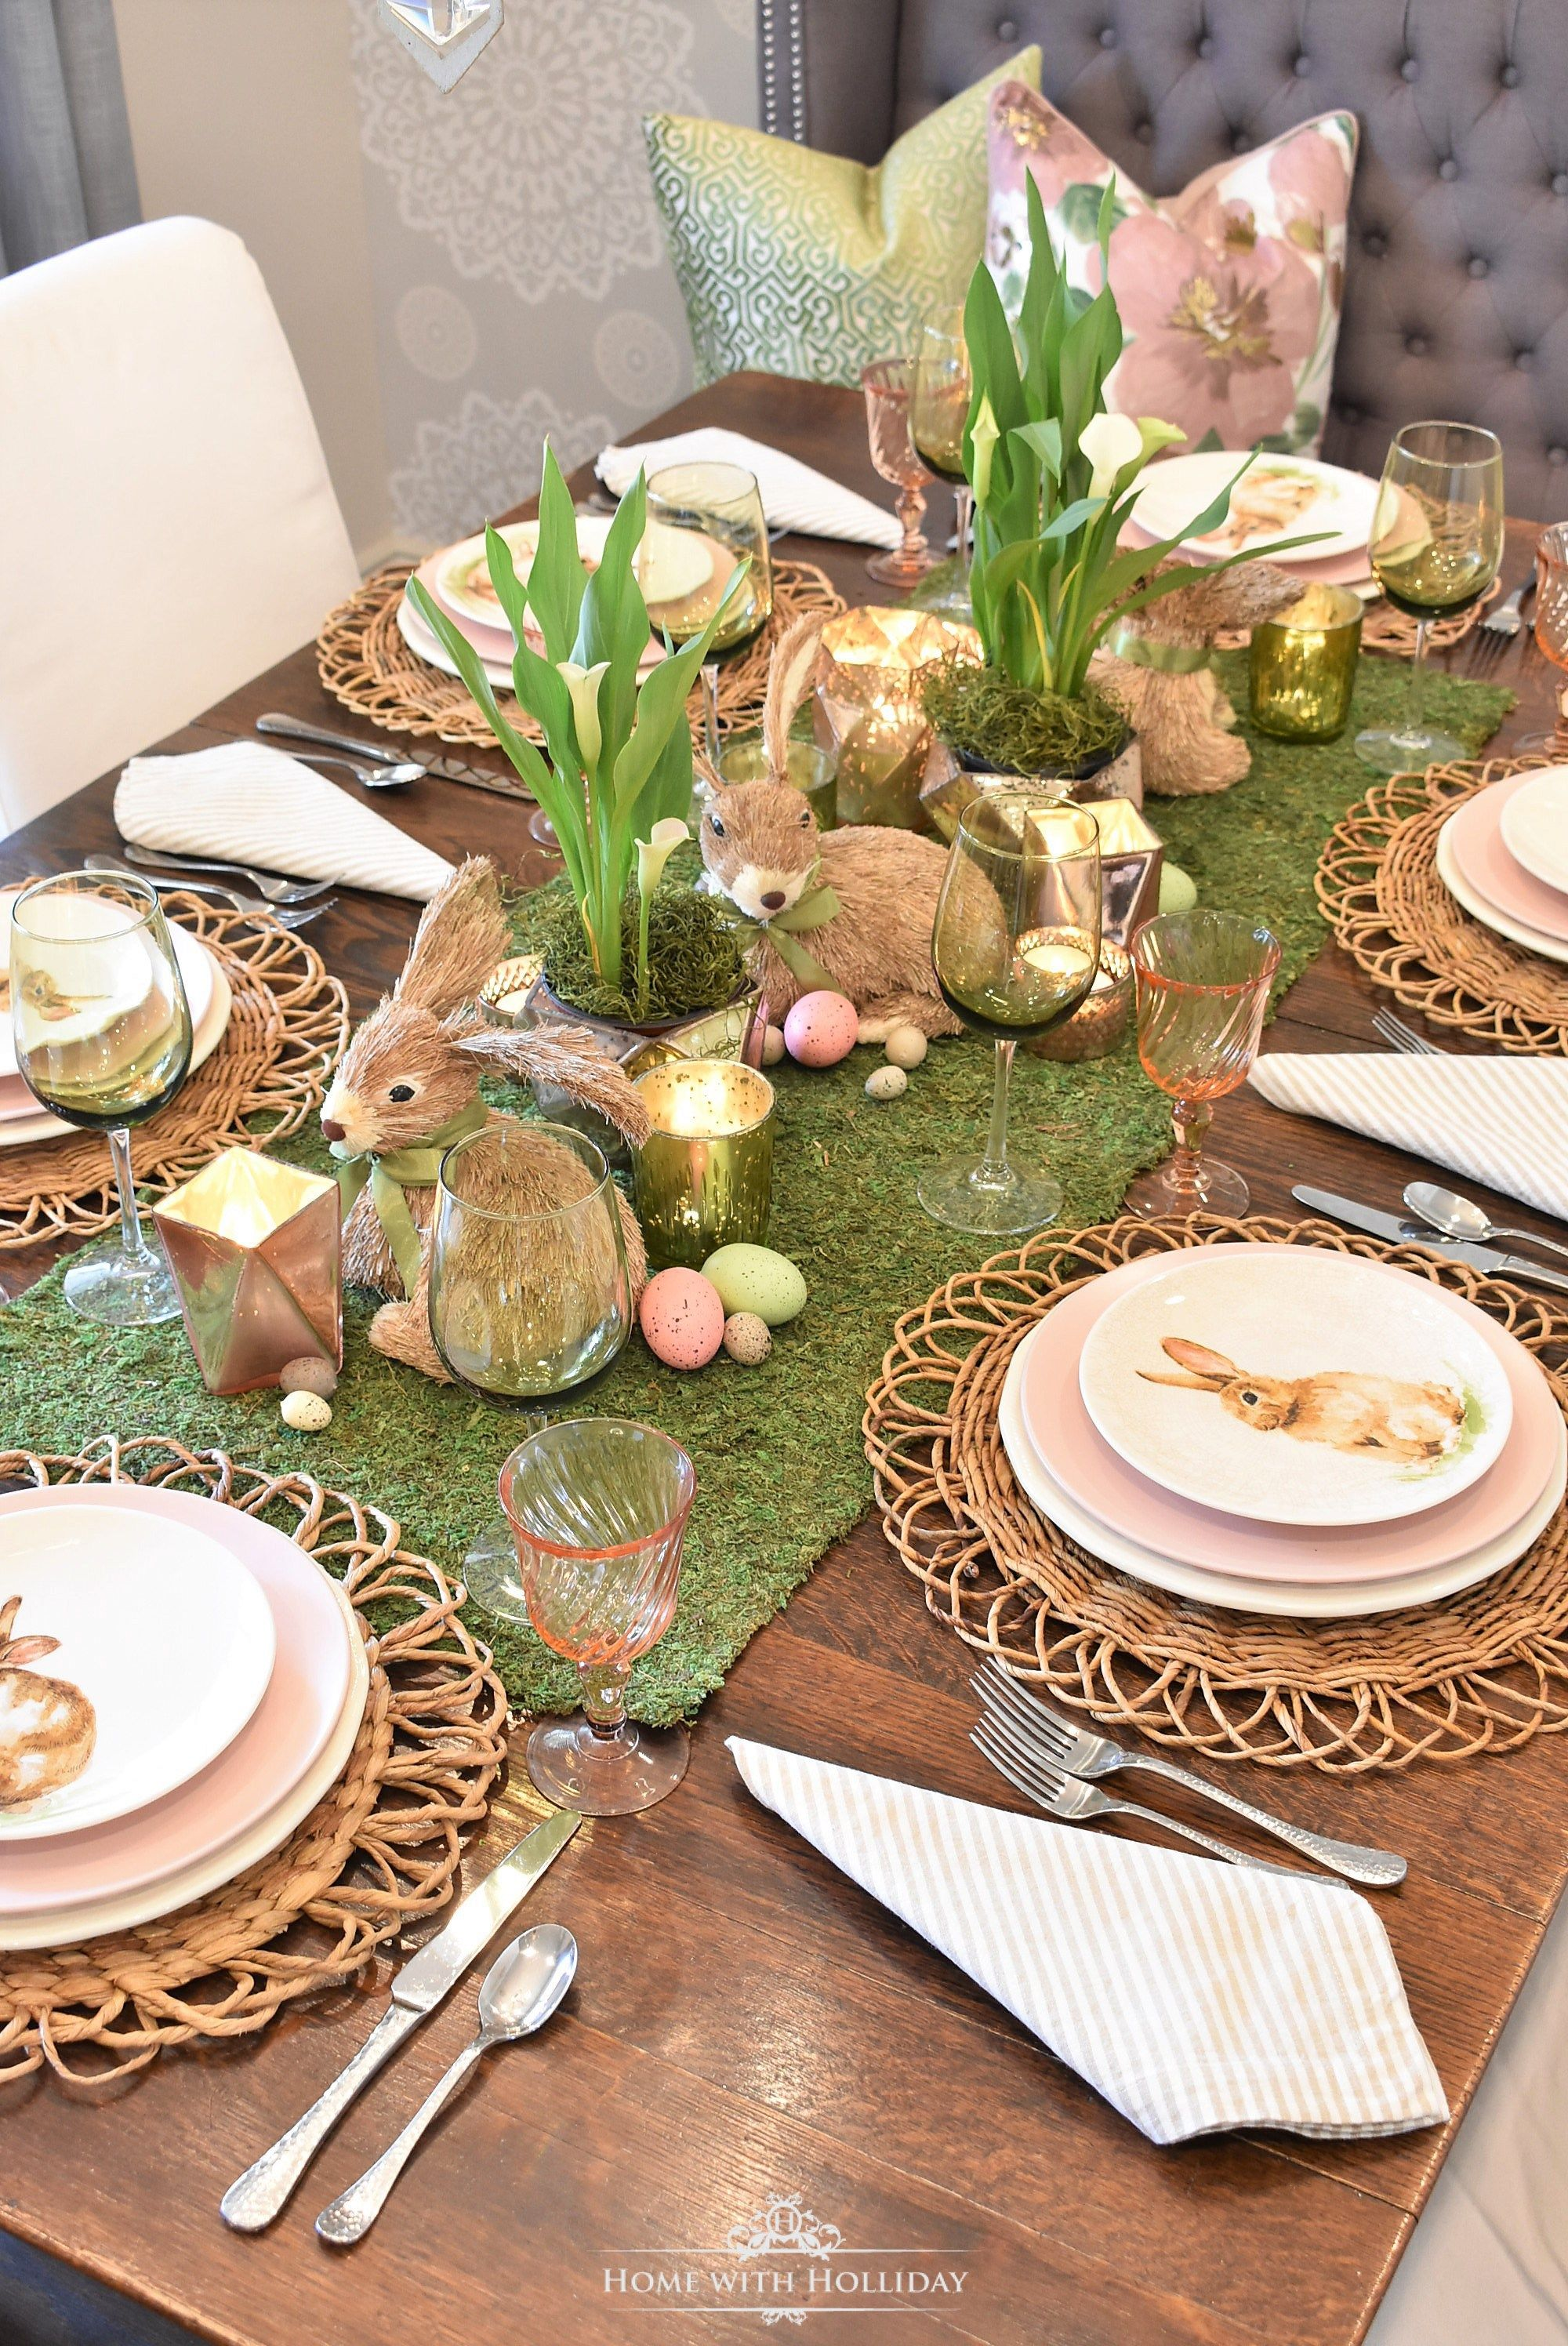 Green And Blush Pink Easter Table Setting Home With Holliday Easter Table Decorations Easter Table Settings Easter Place Settings